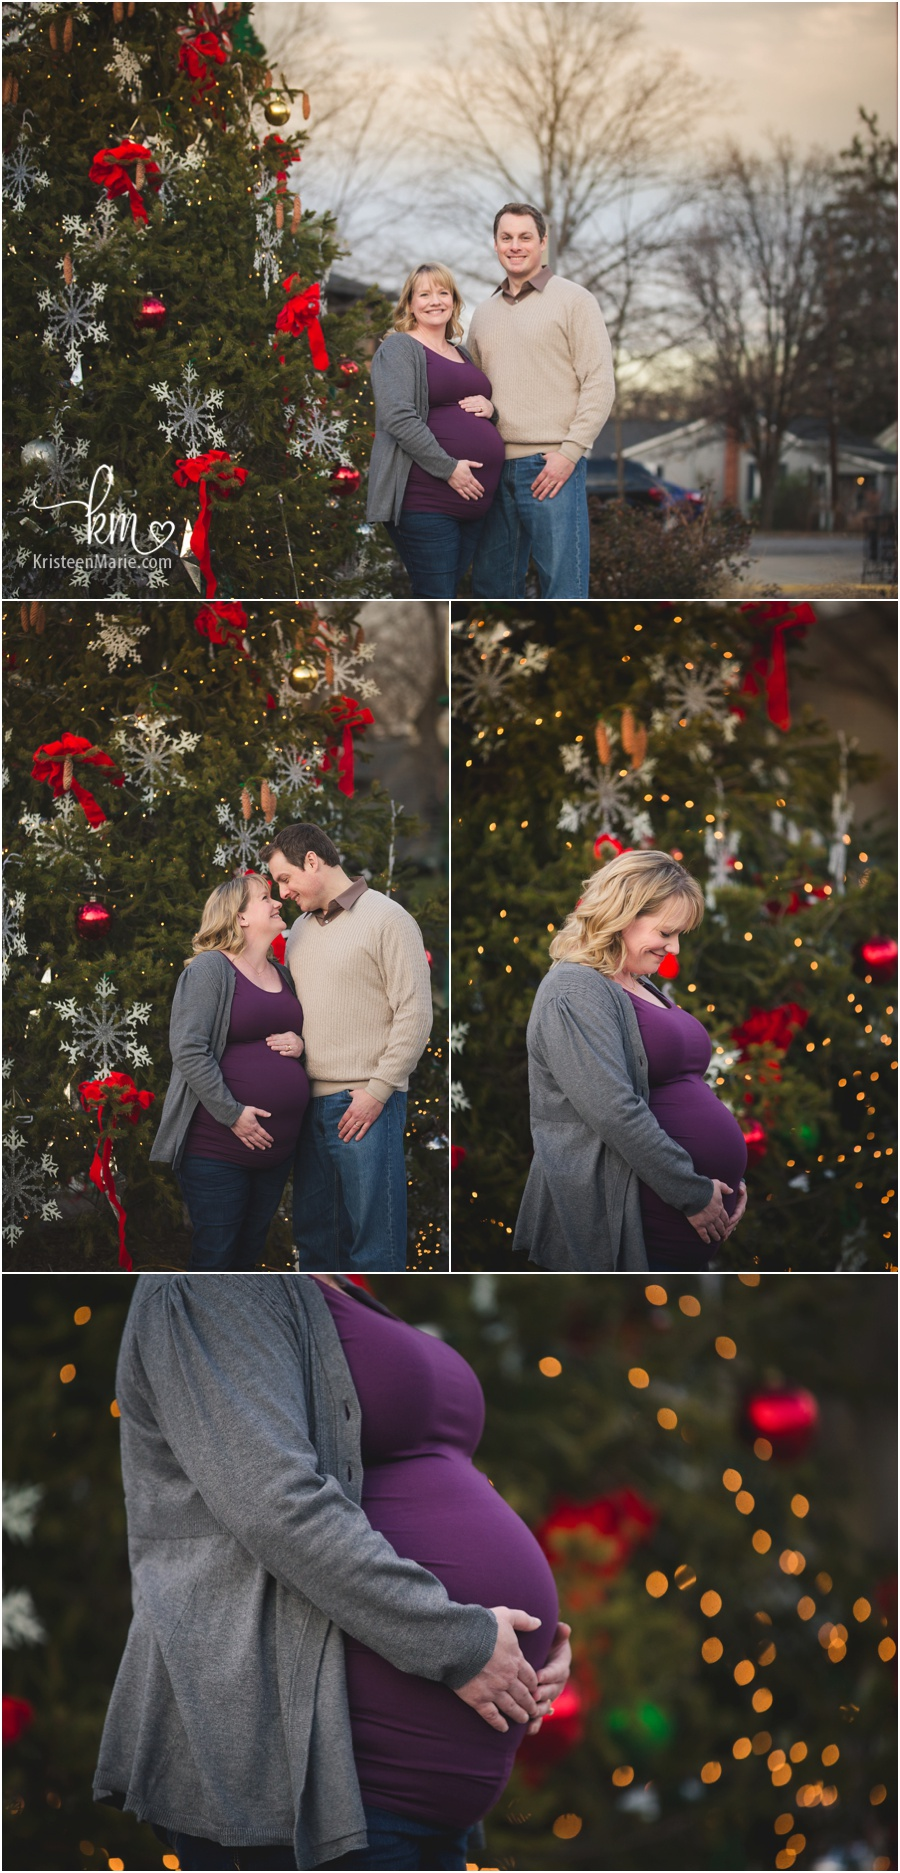 Maternity Session In Downtown Zionsville Indiana